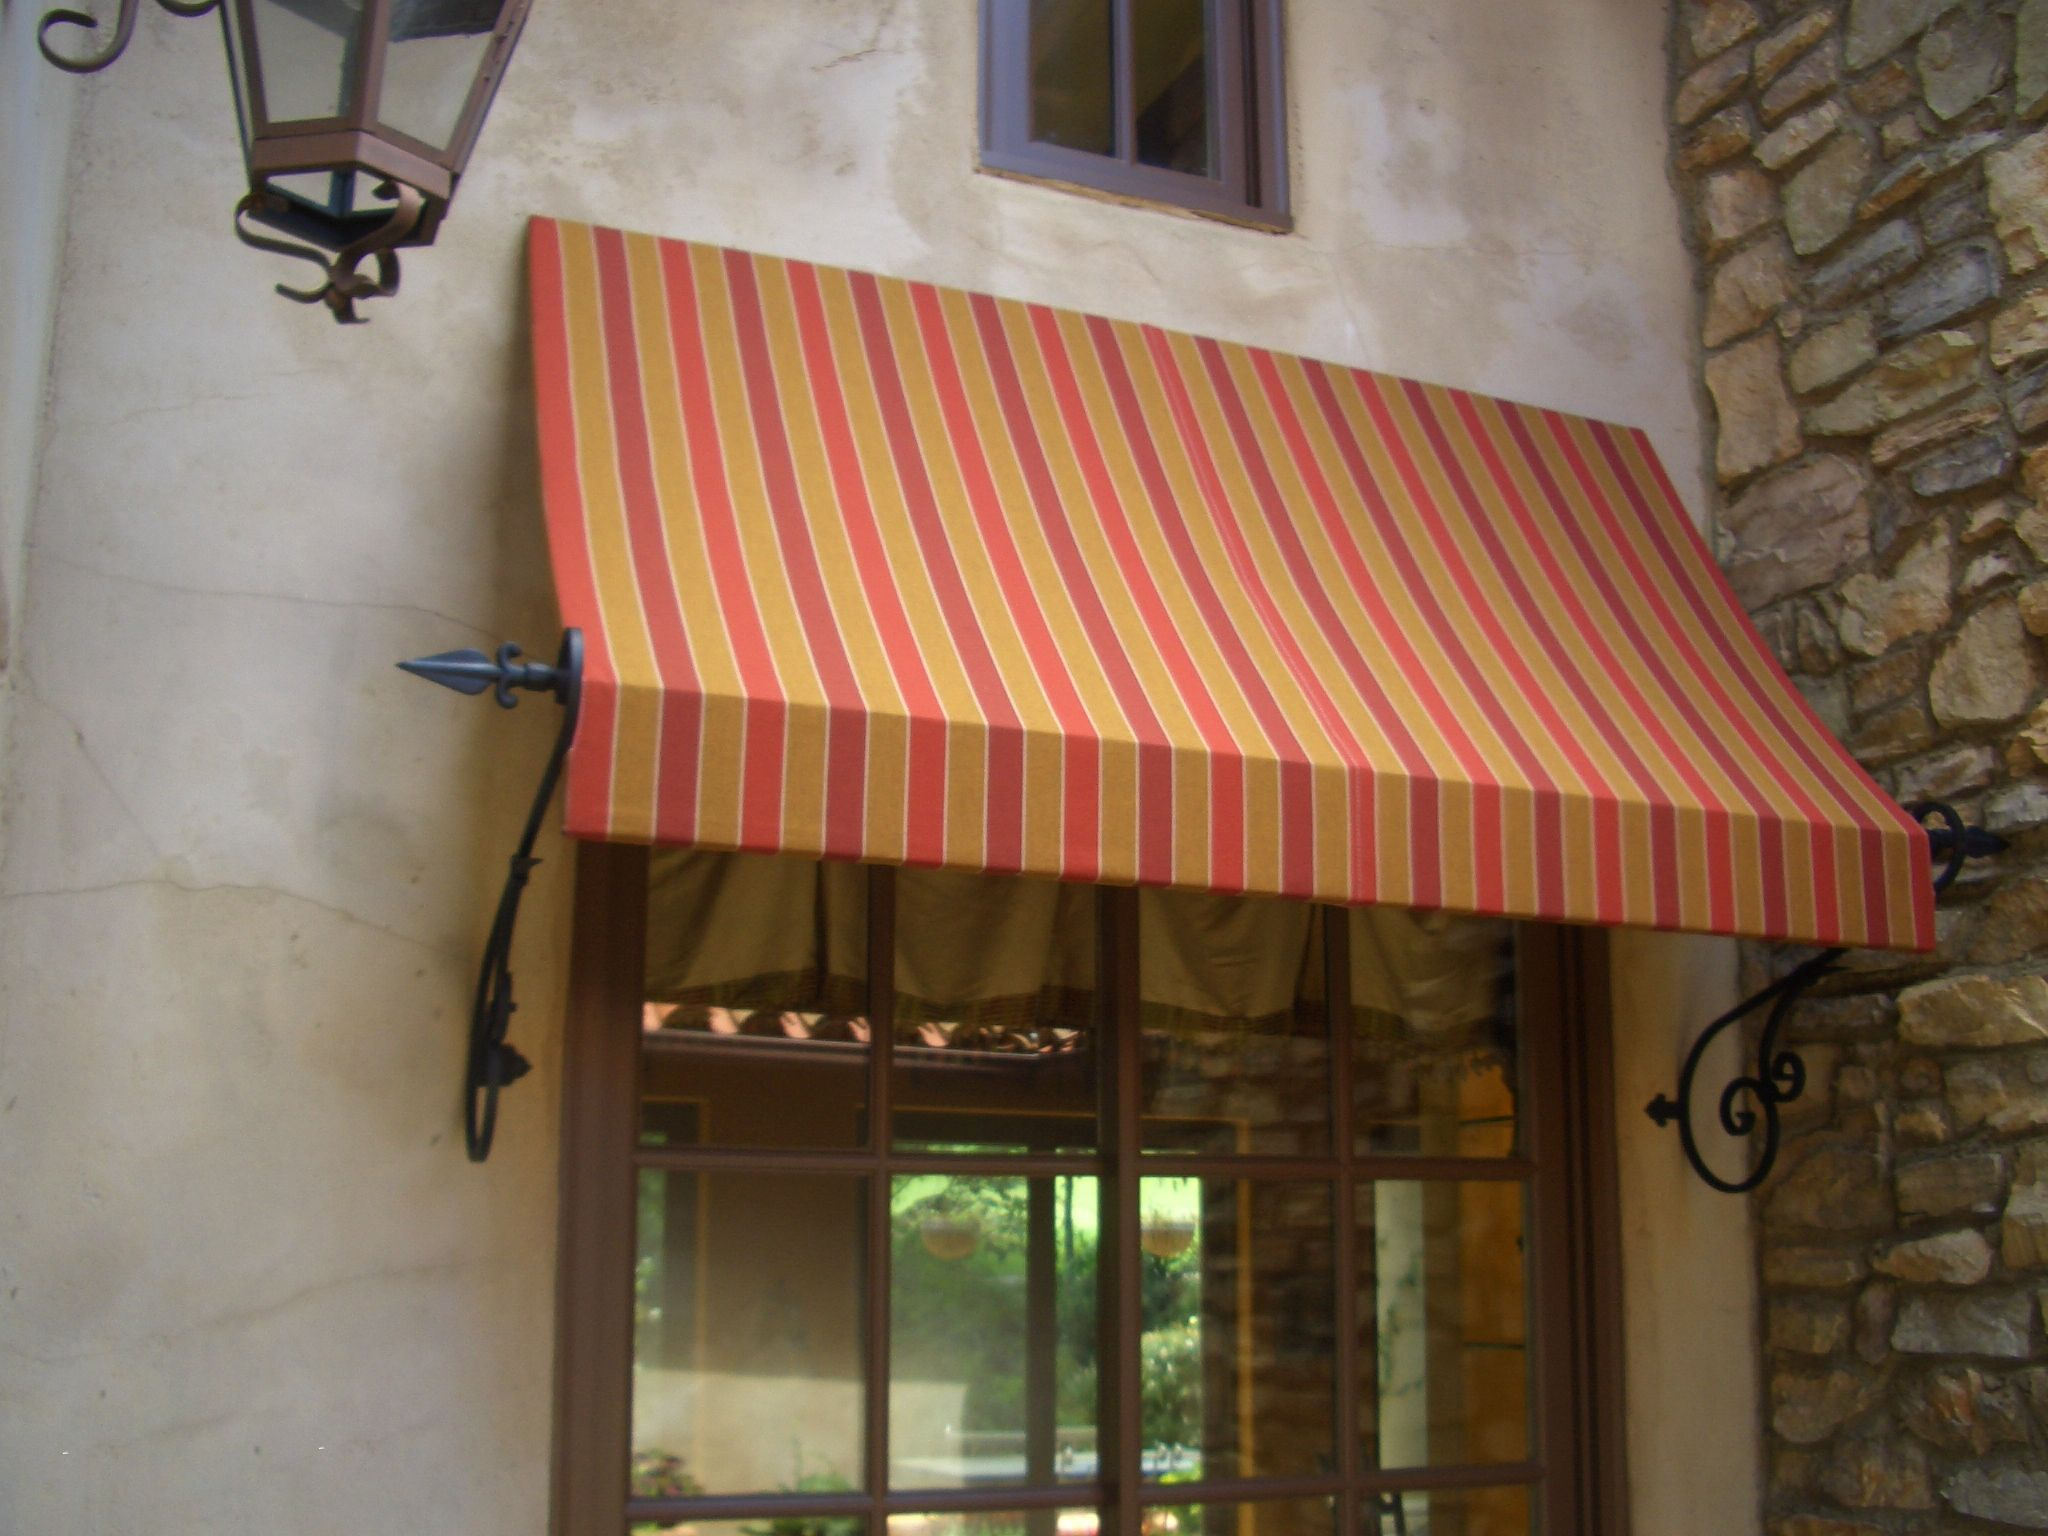 Awnings For Homes Decorative Spear Awnings The Awning Company